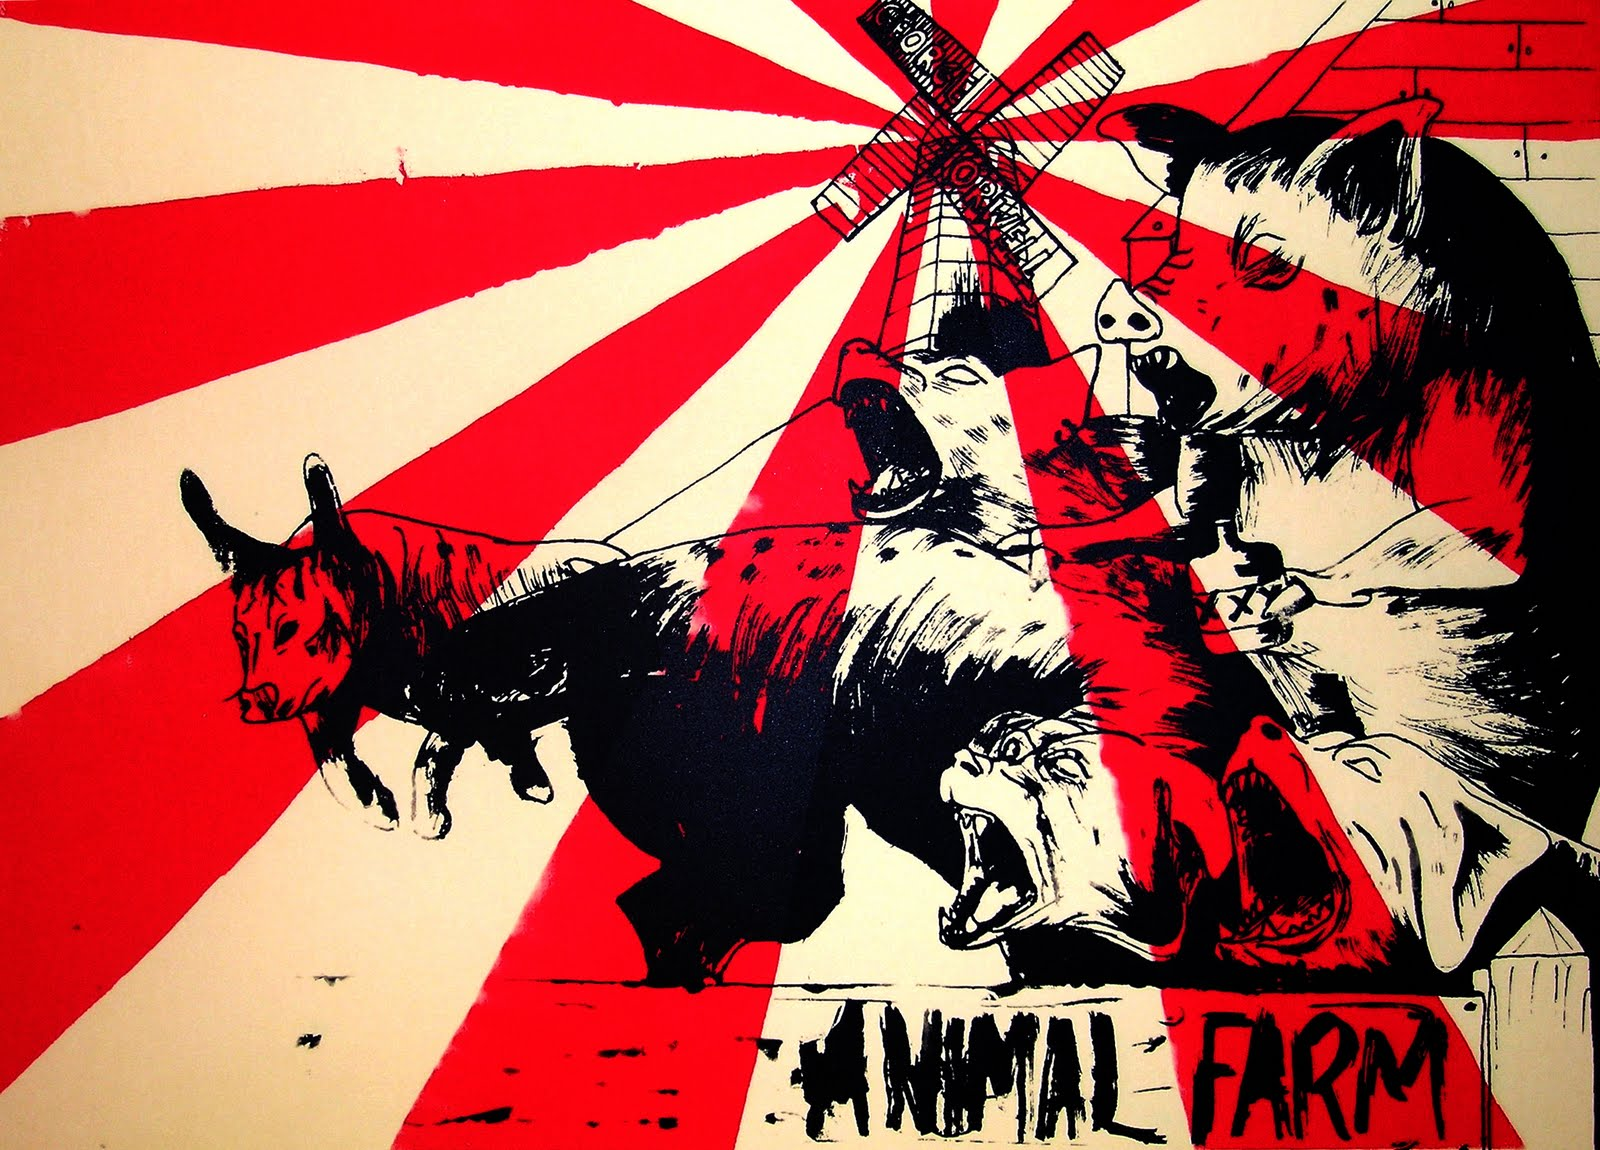 a review of the allegory of stalinist theory in the novel animal farm by george orwell Human nature in animal farm - animal farm by george orwell is a novel based on animal farm, by george orwell, is an allegory animal farm and stalinist.